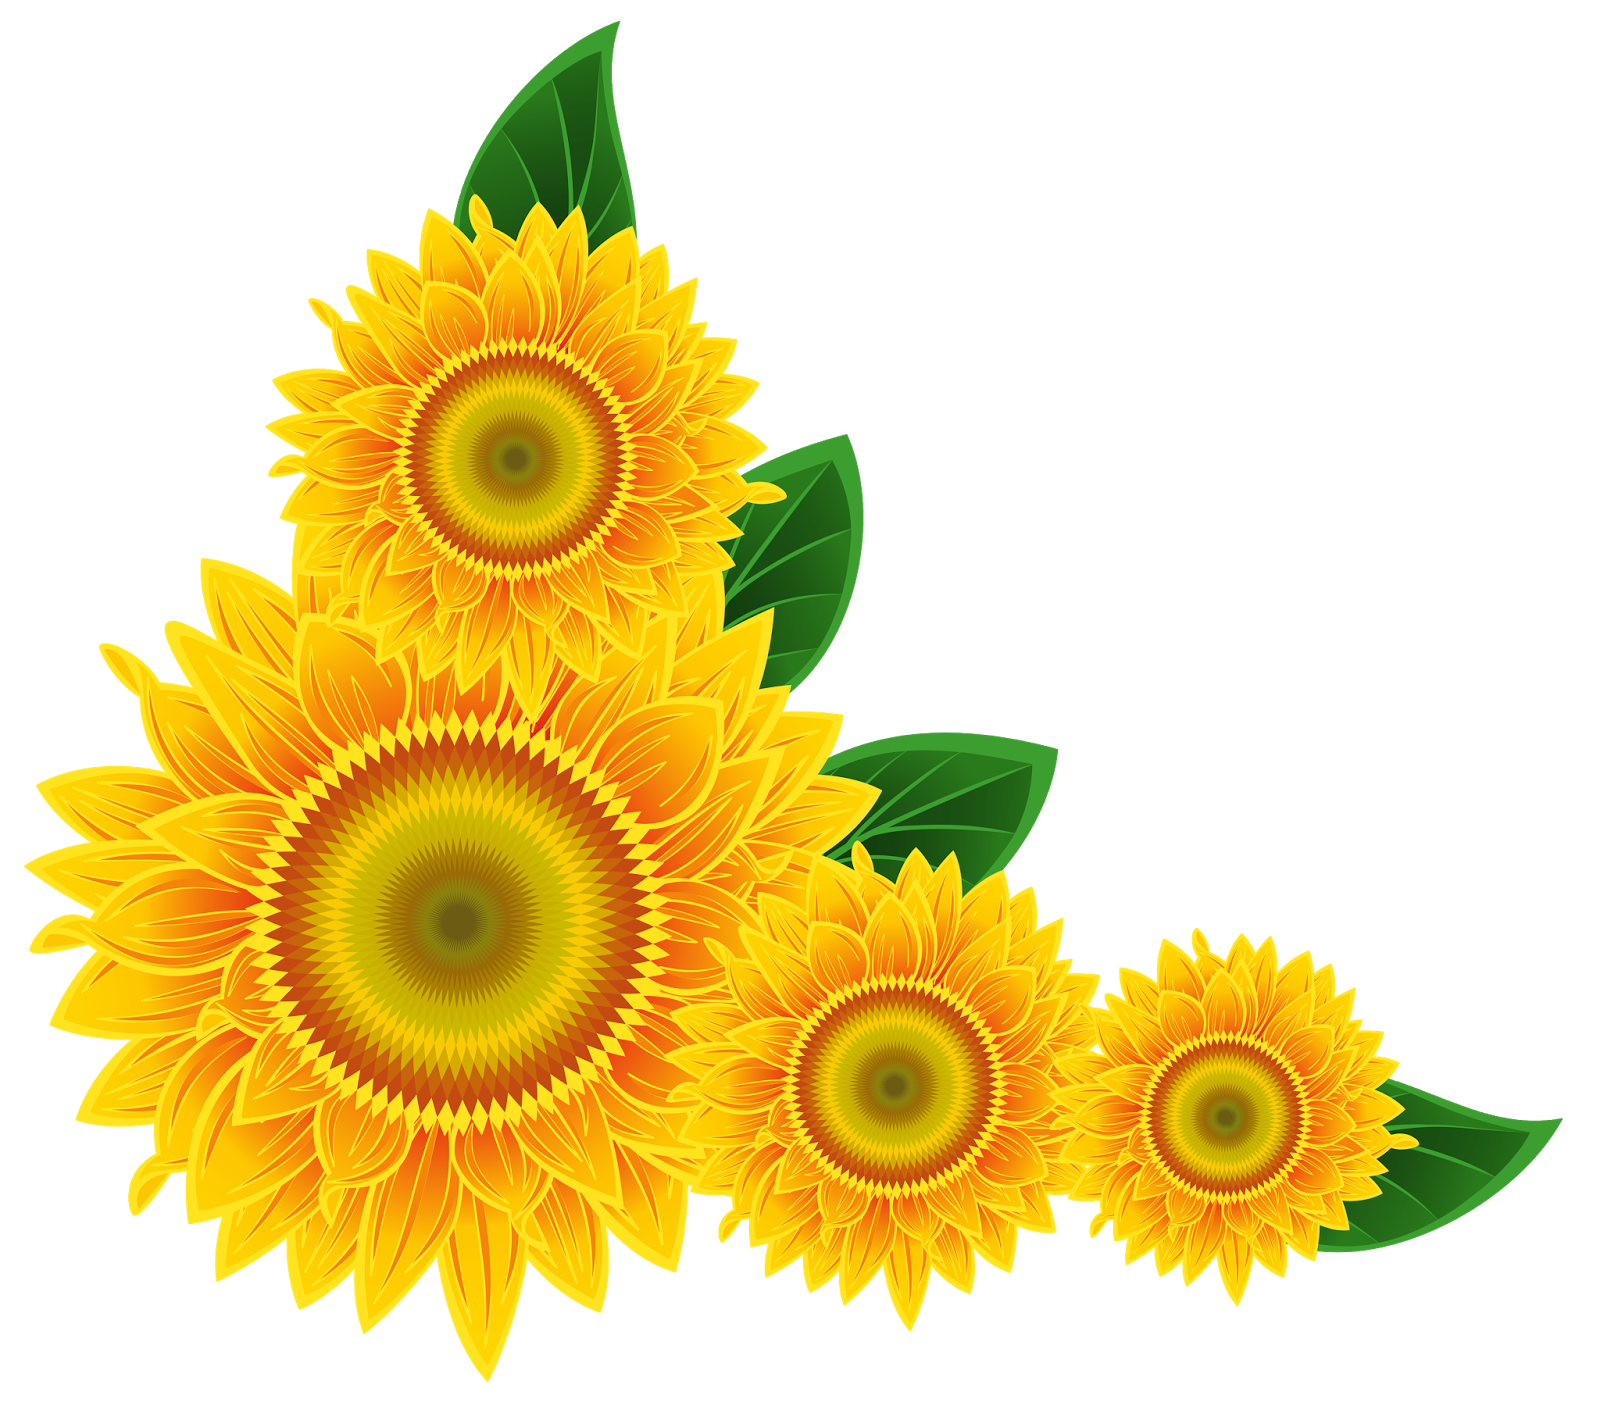 Sunflower PNG Image